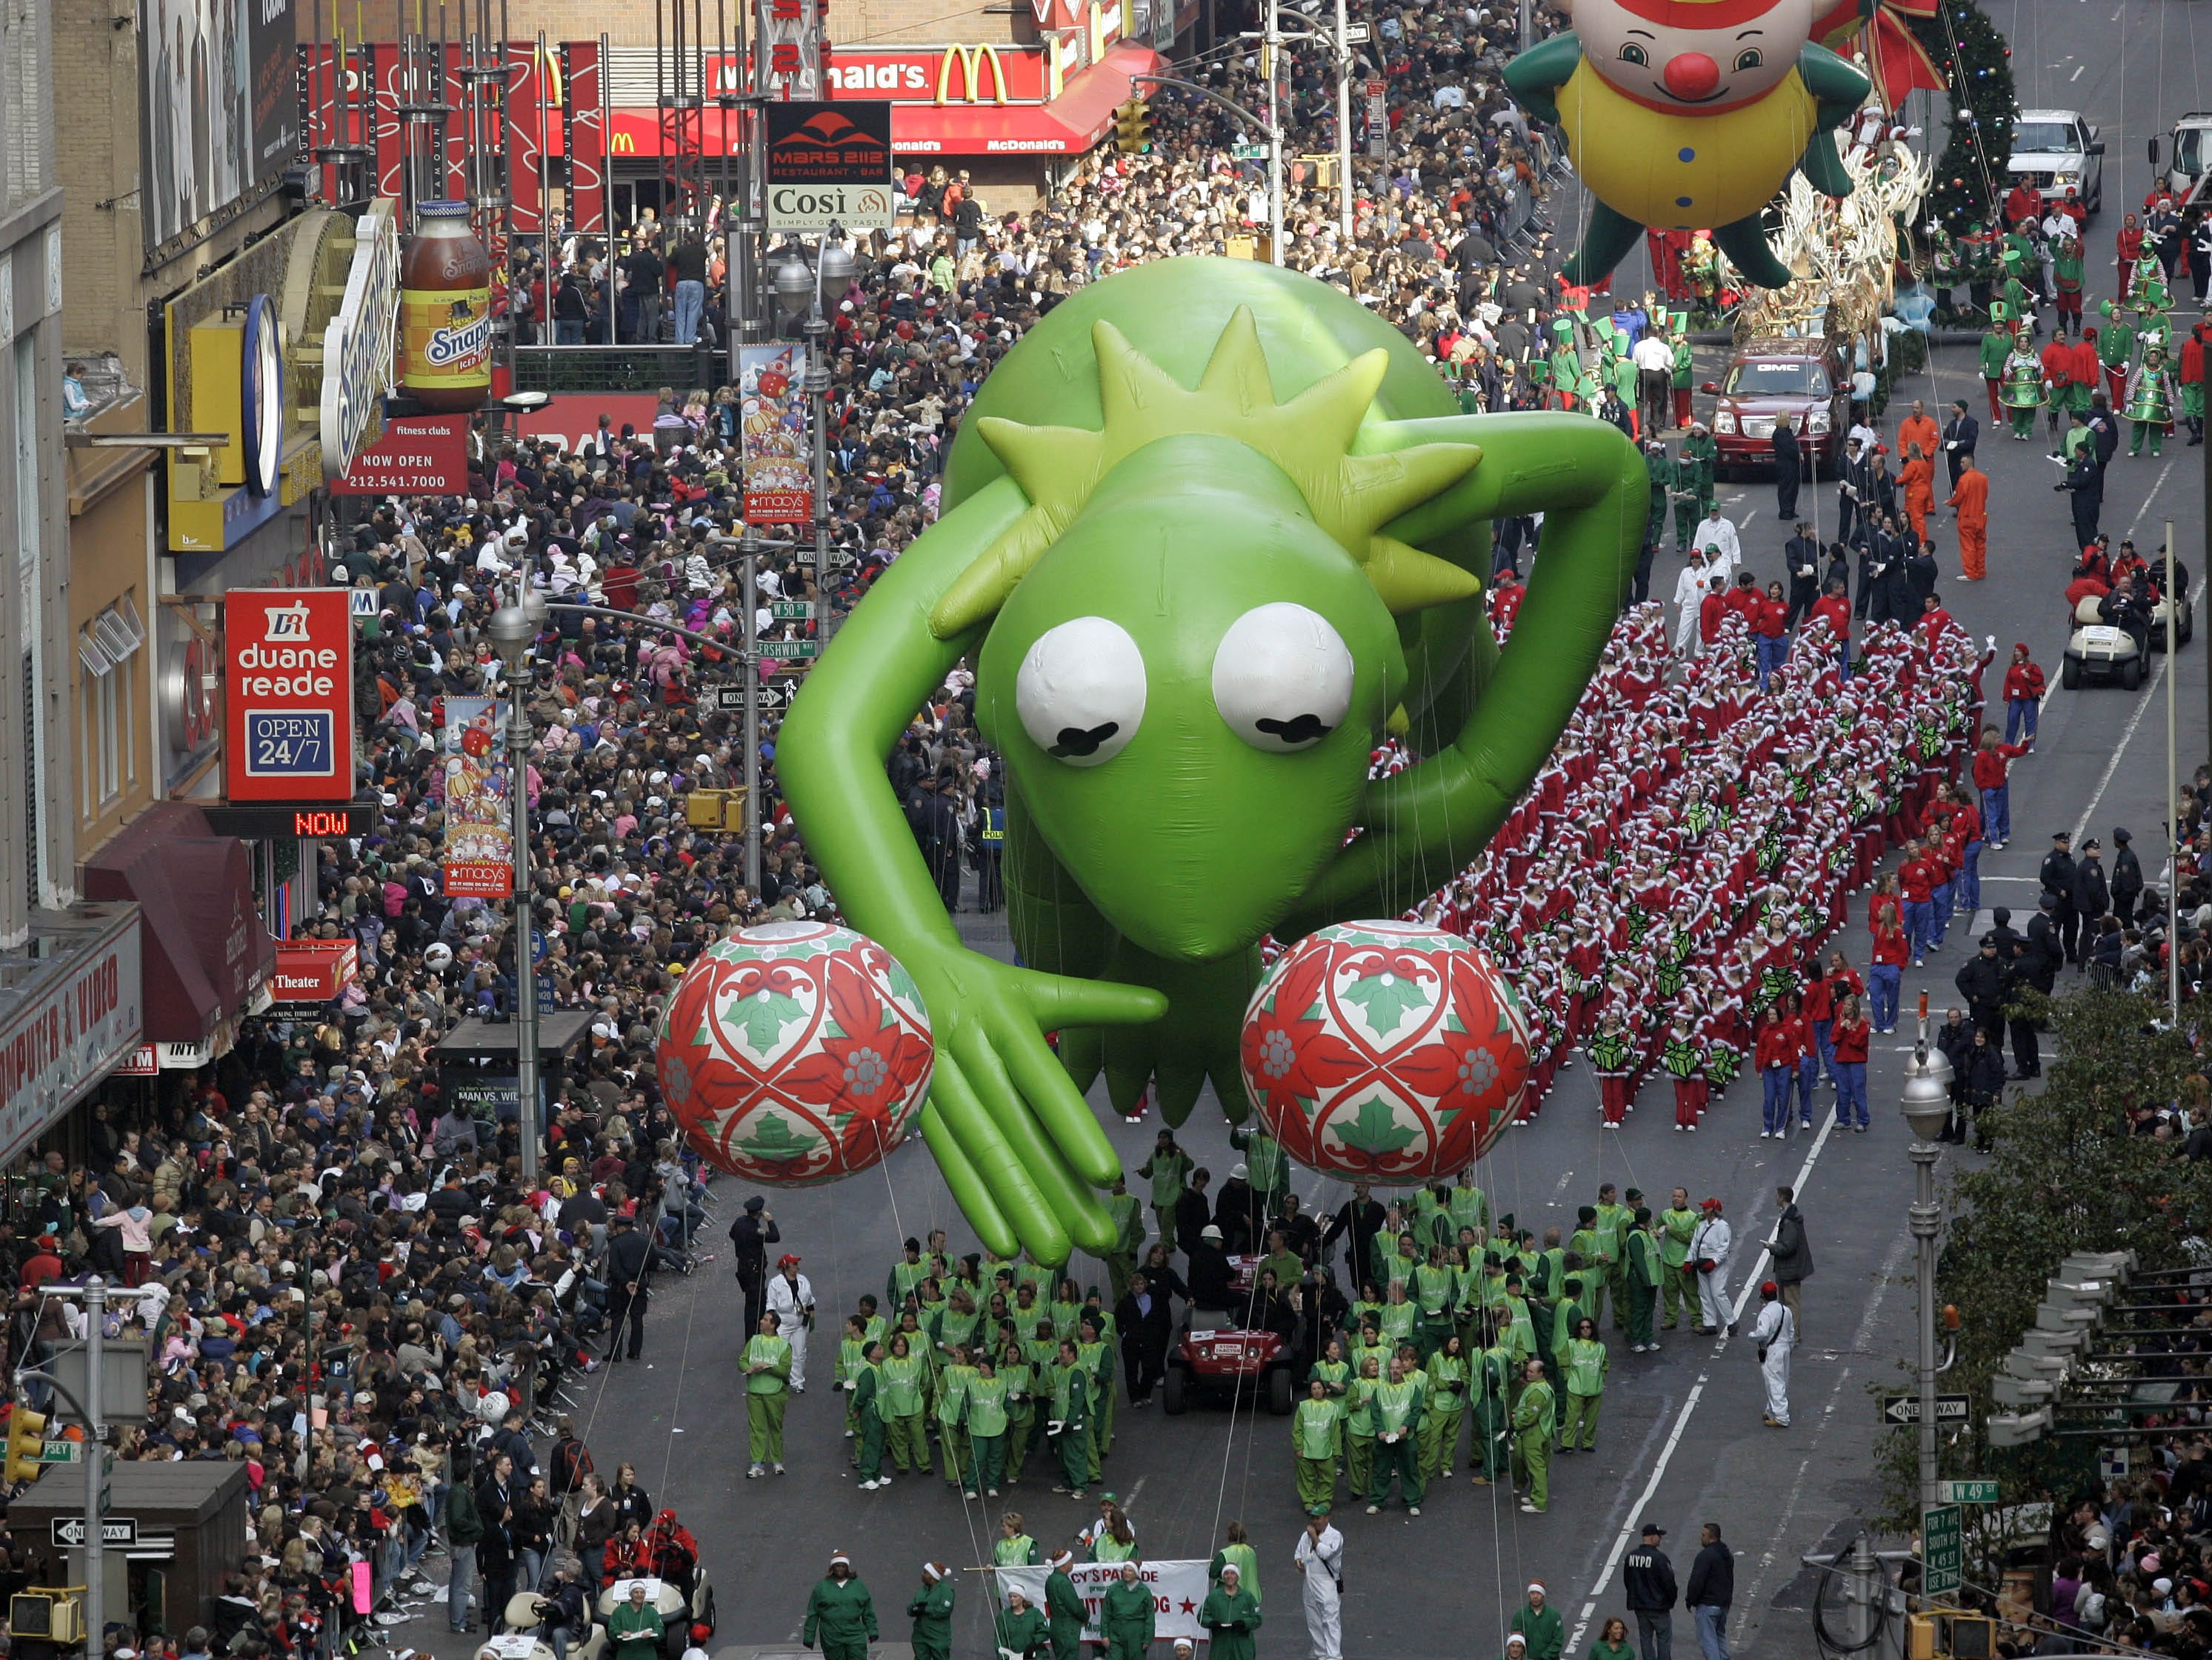 The Kermit the Frog balloon makes its way down Broadway during the Macy's Thanksgiving Day parade in New York, Thursday, Nov. 22, 2007.     (AP Photo/Jeff Christensen)